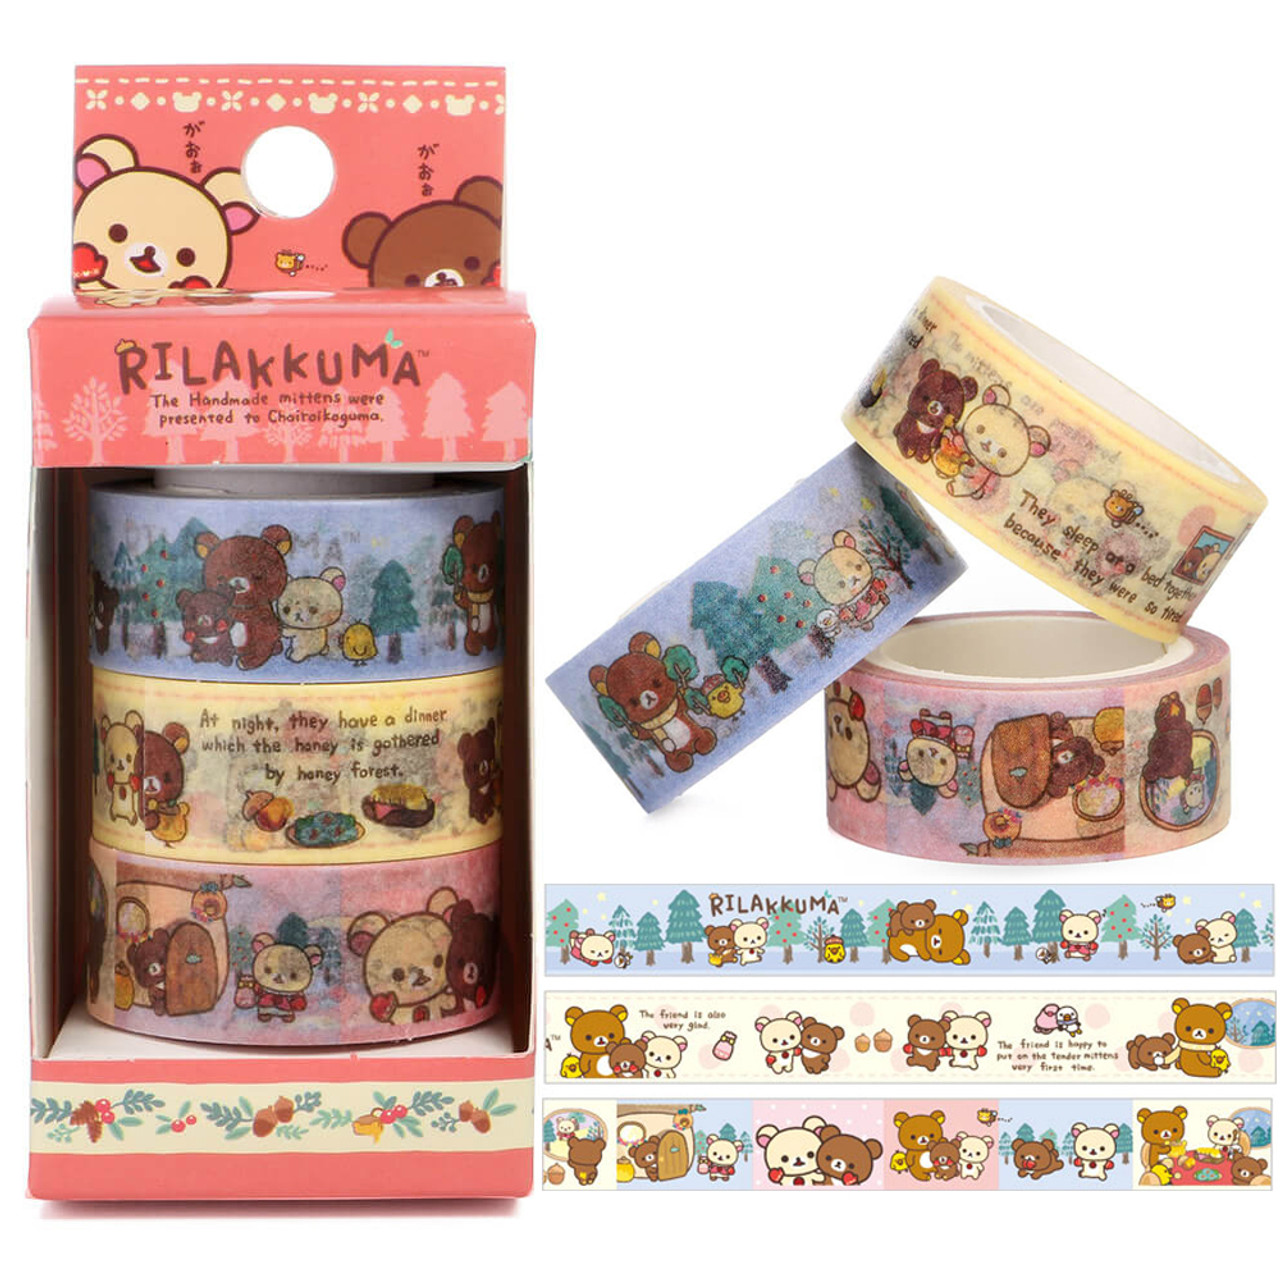 Rilakkuma Handmade Mittens Washi Tape - SE30801 ( Cover View )